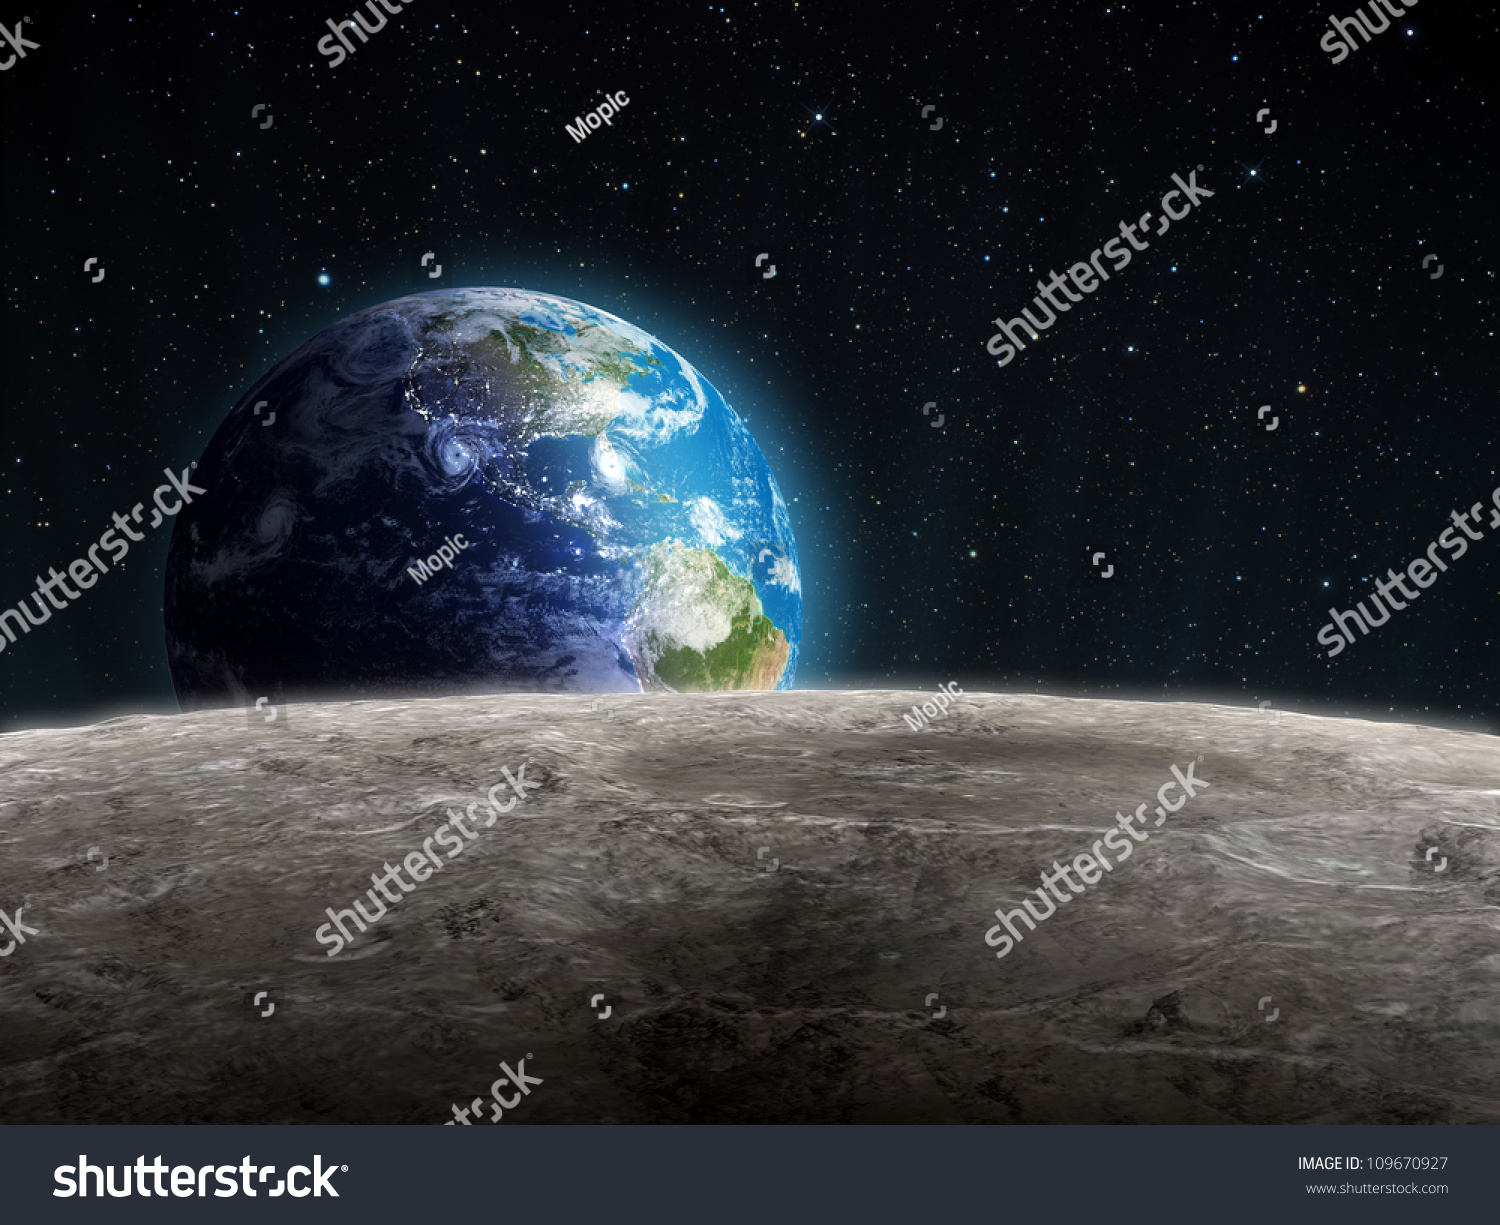 surface of moon as seen from earth - photo #12